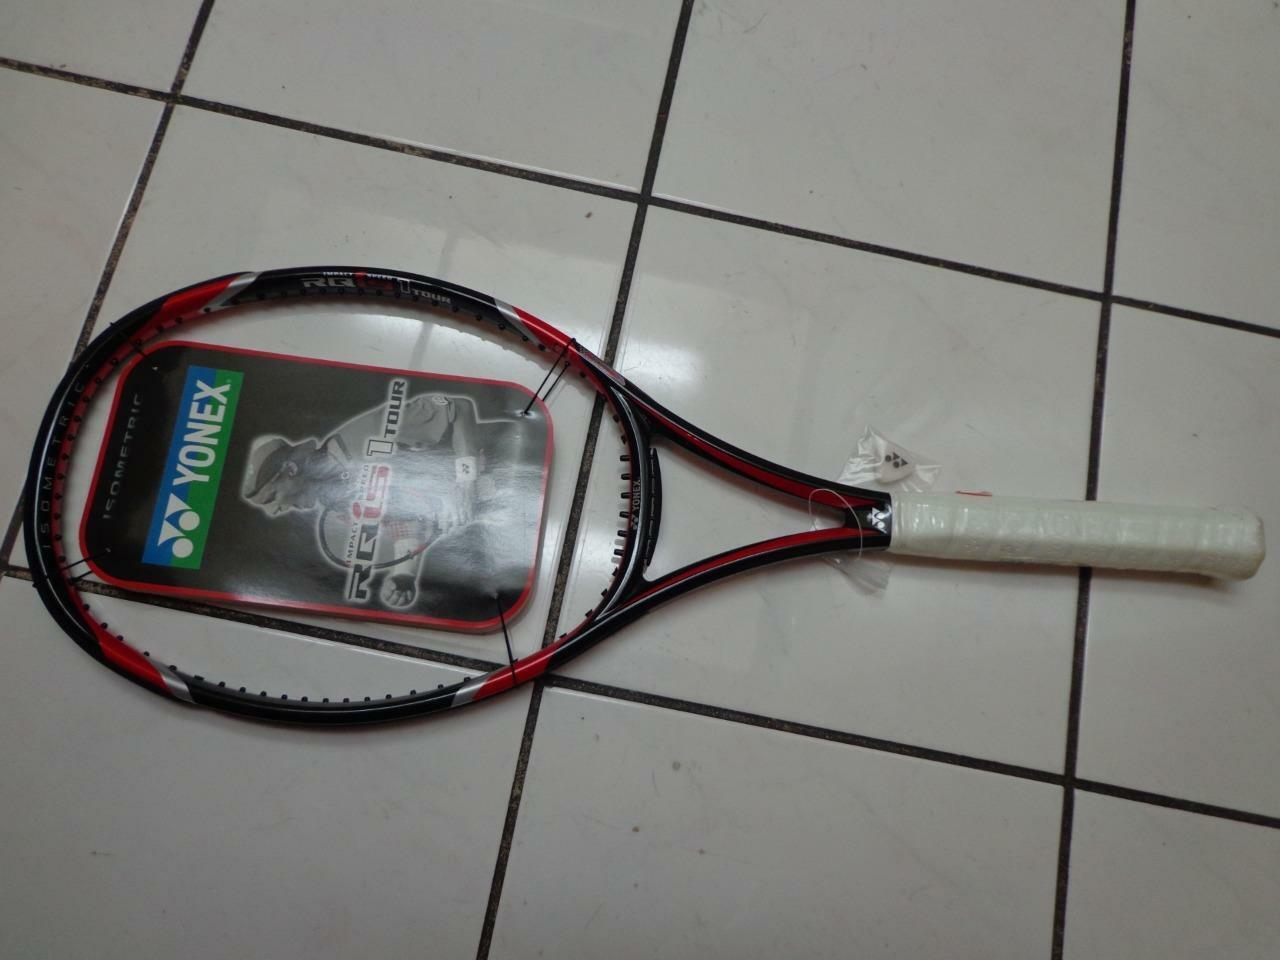 NEW Yonex RQ IS 1 Tour 95 head 16x18 4 1 2 grip 295 grams Tennis Racquet